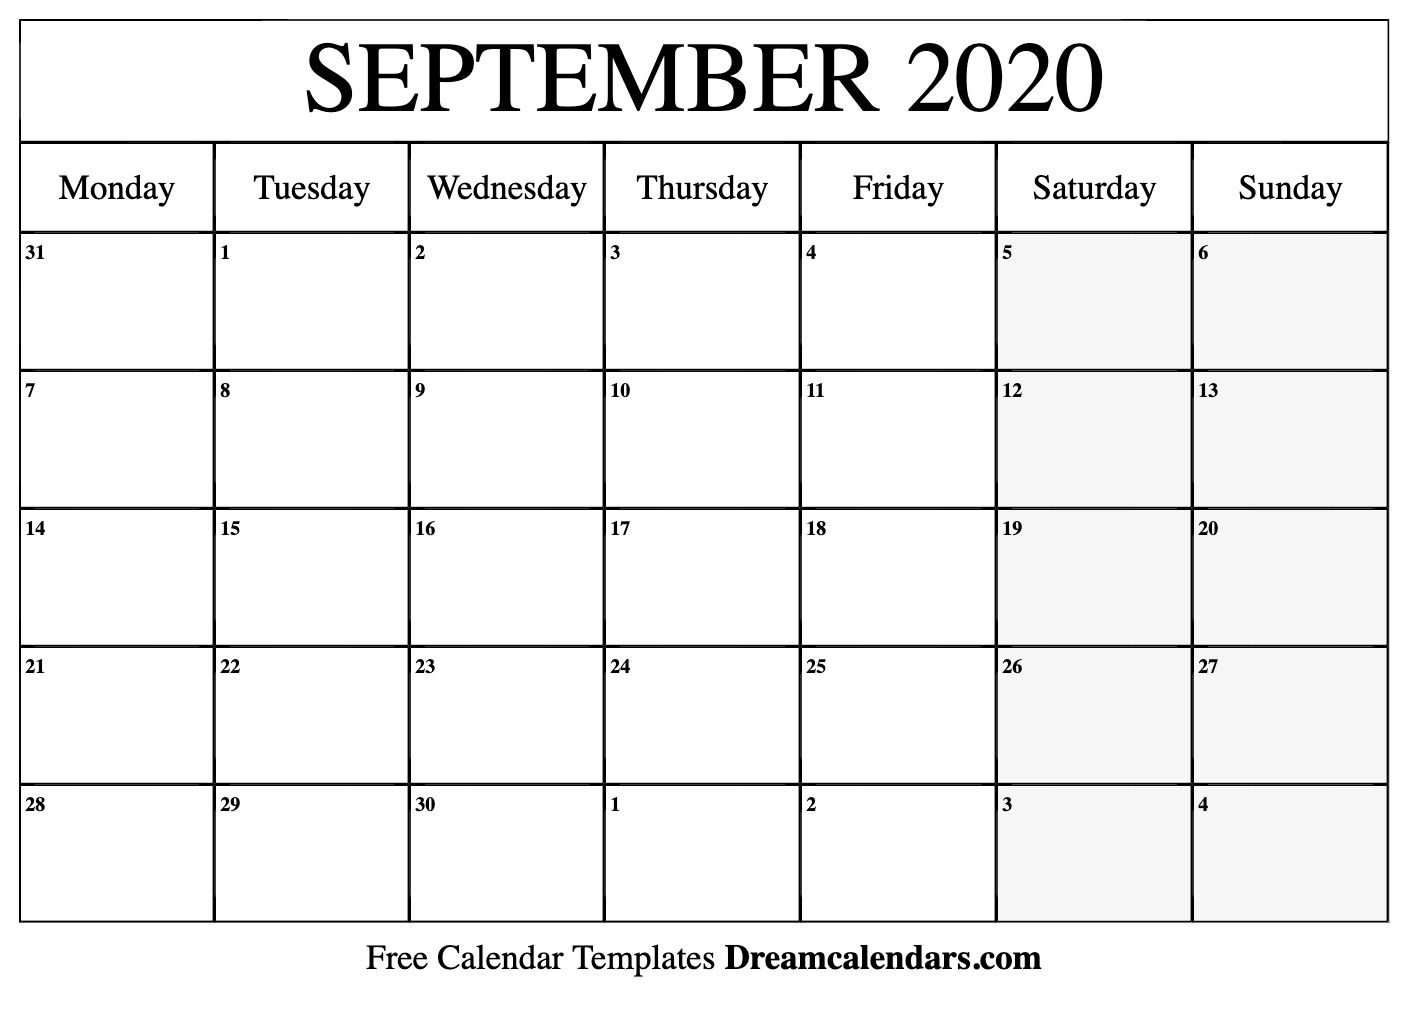 September 2020 Calendar Printable Monday Dream Calendars In 2020 Monthly Calendar Printable Calendar Printables Calendar Template